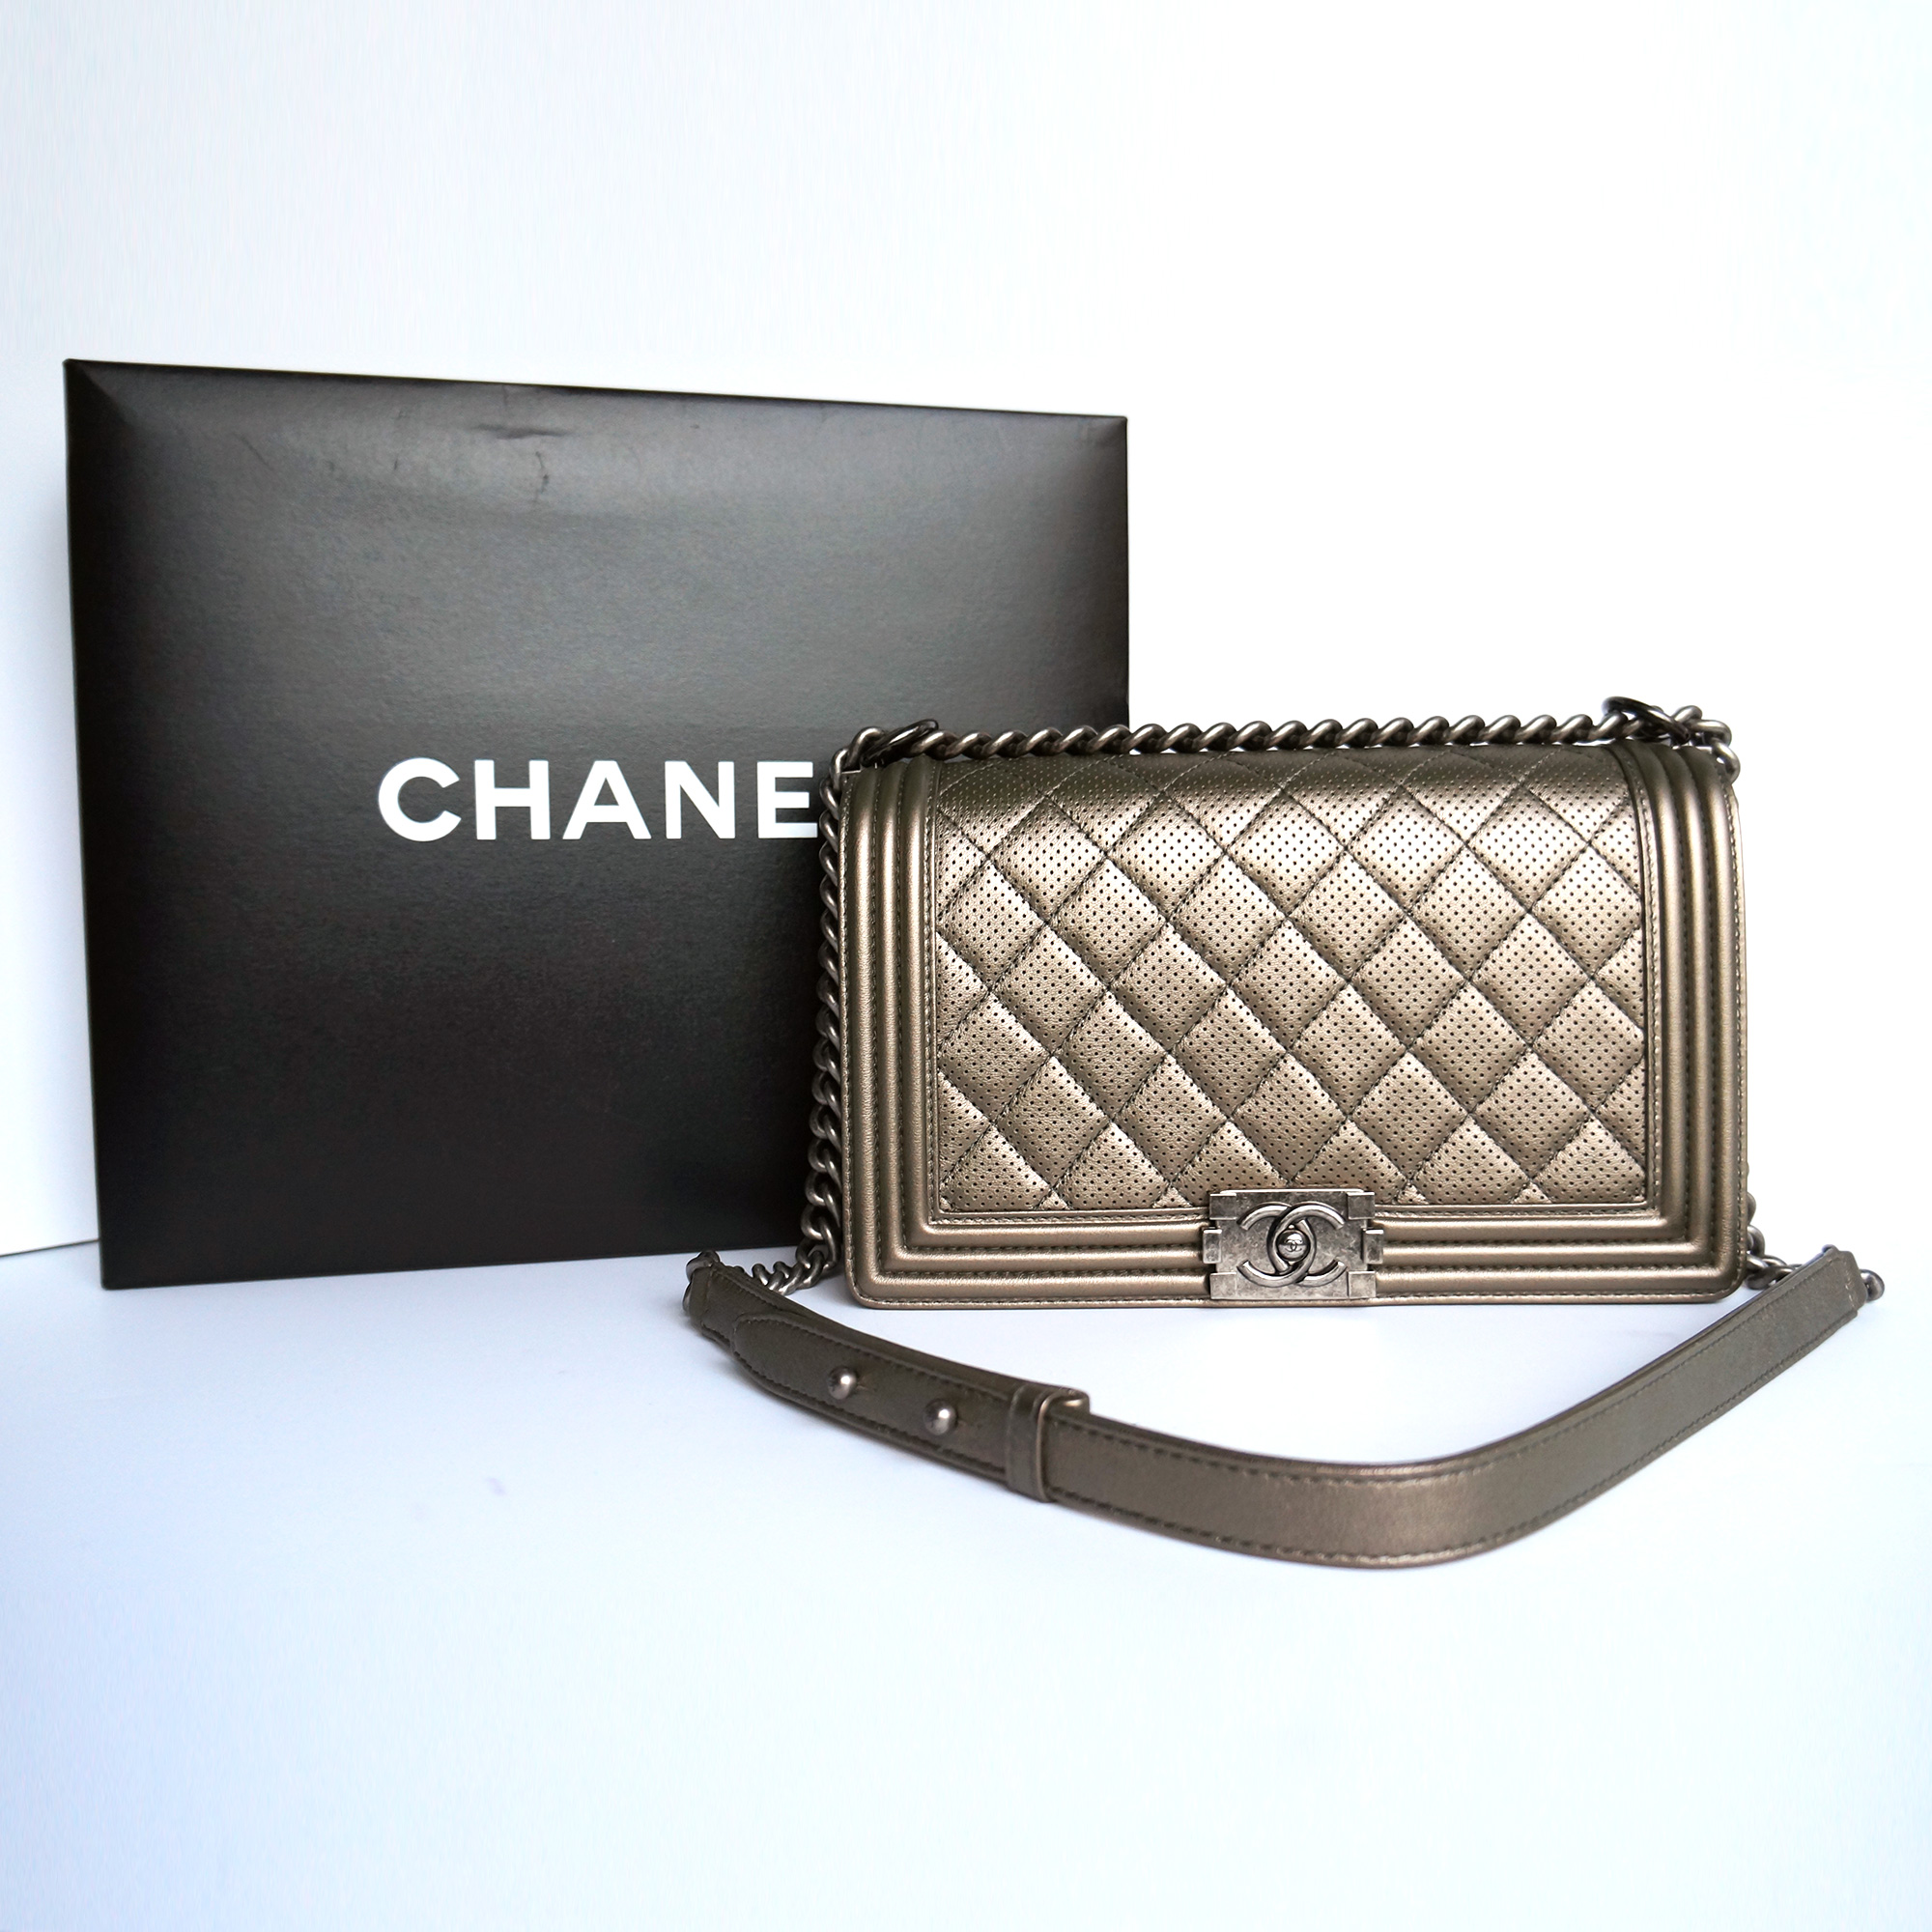 664c540348fb Chanel Boy Flap Bag Dark Silver Perforated Leather Ruthenium Hardware